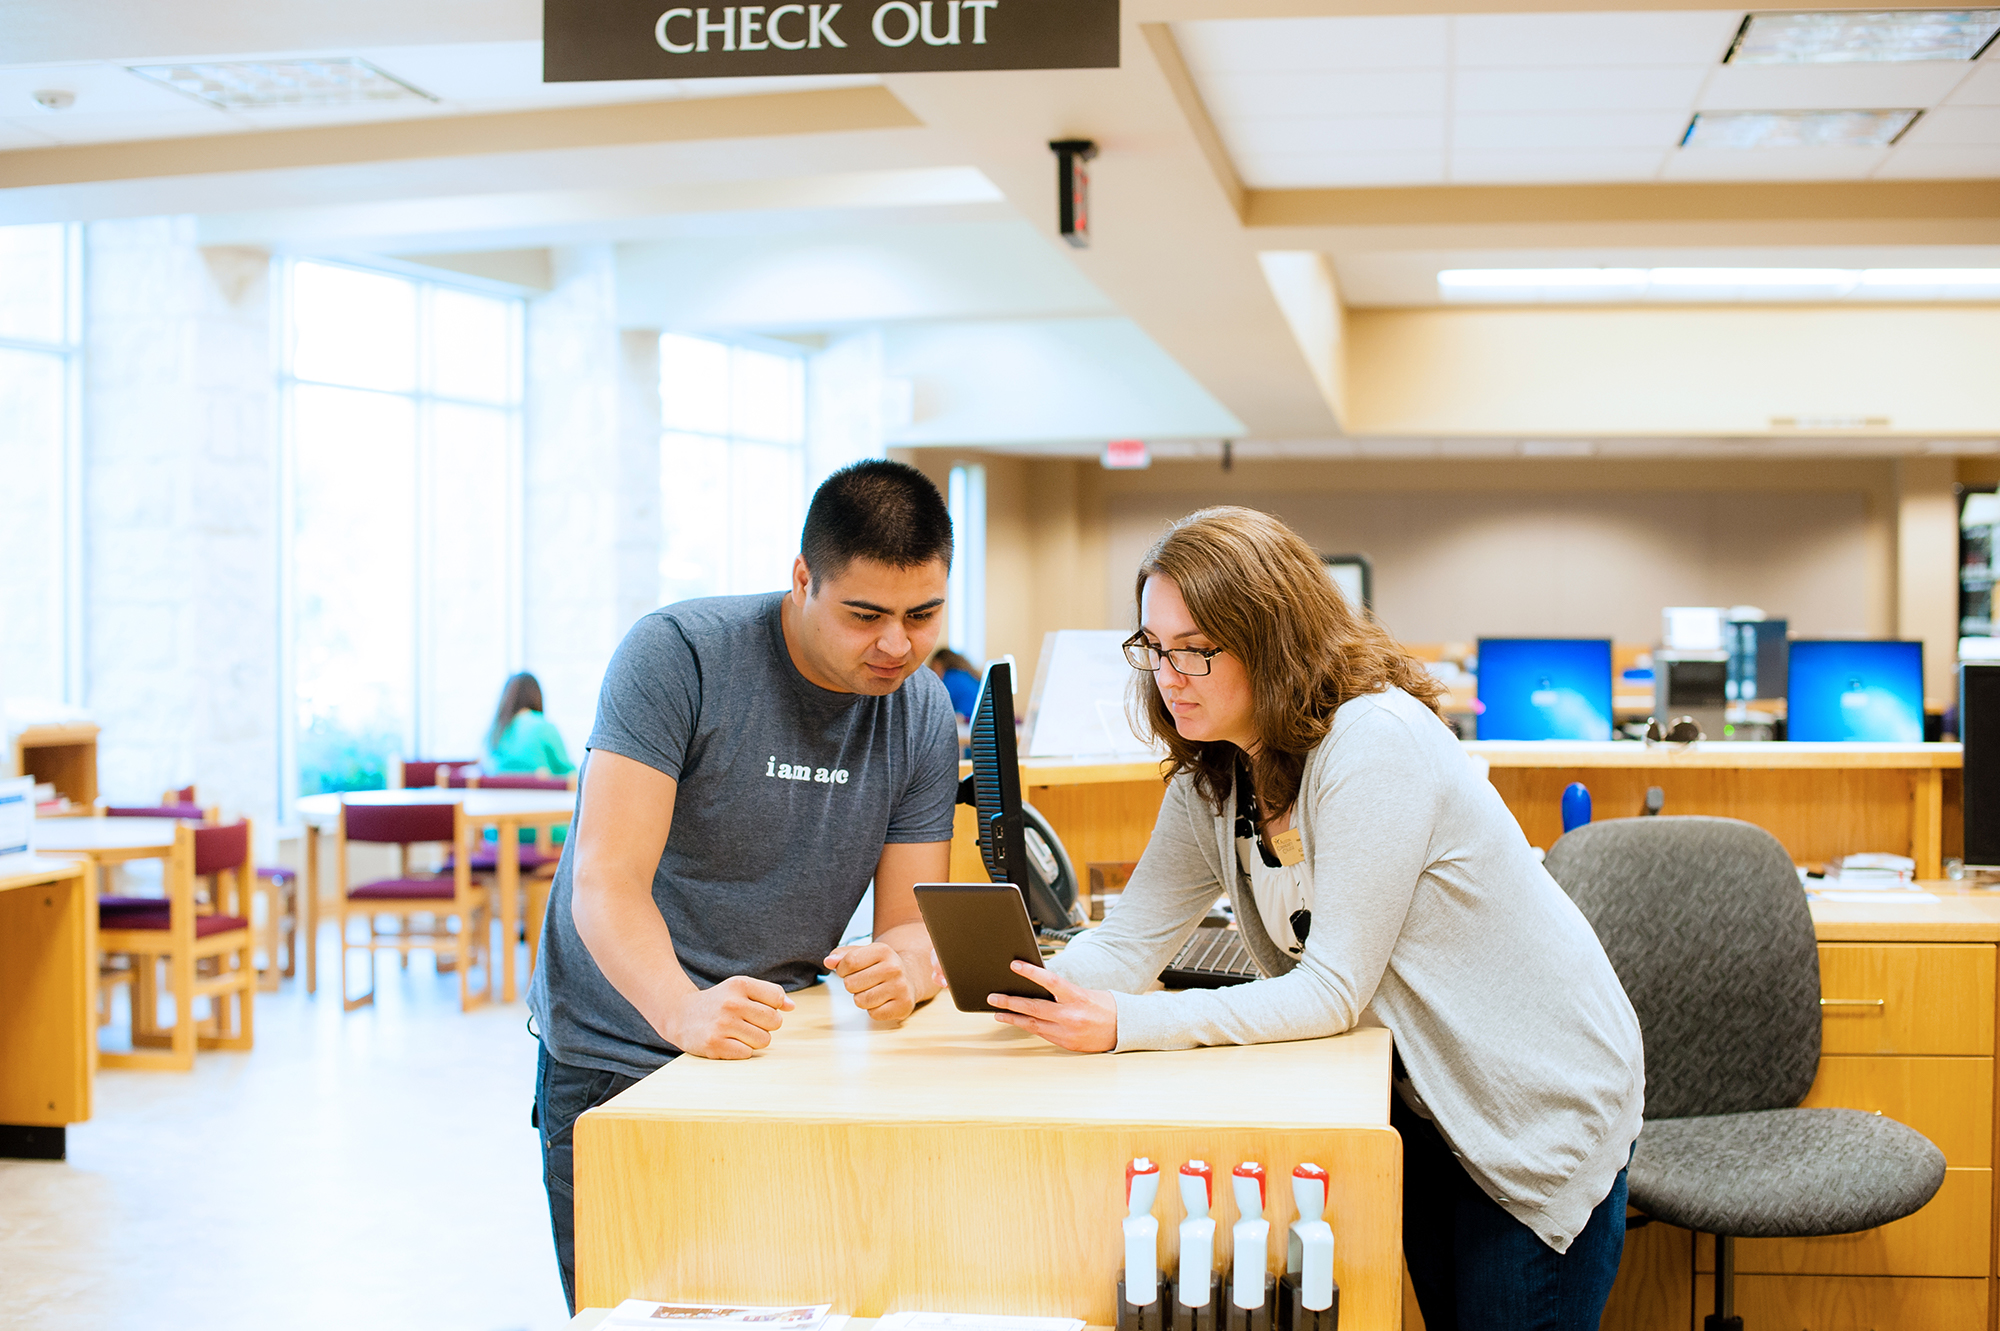 A librarian helping a student